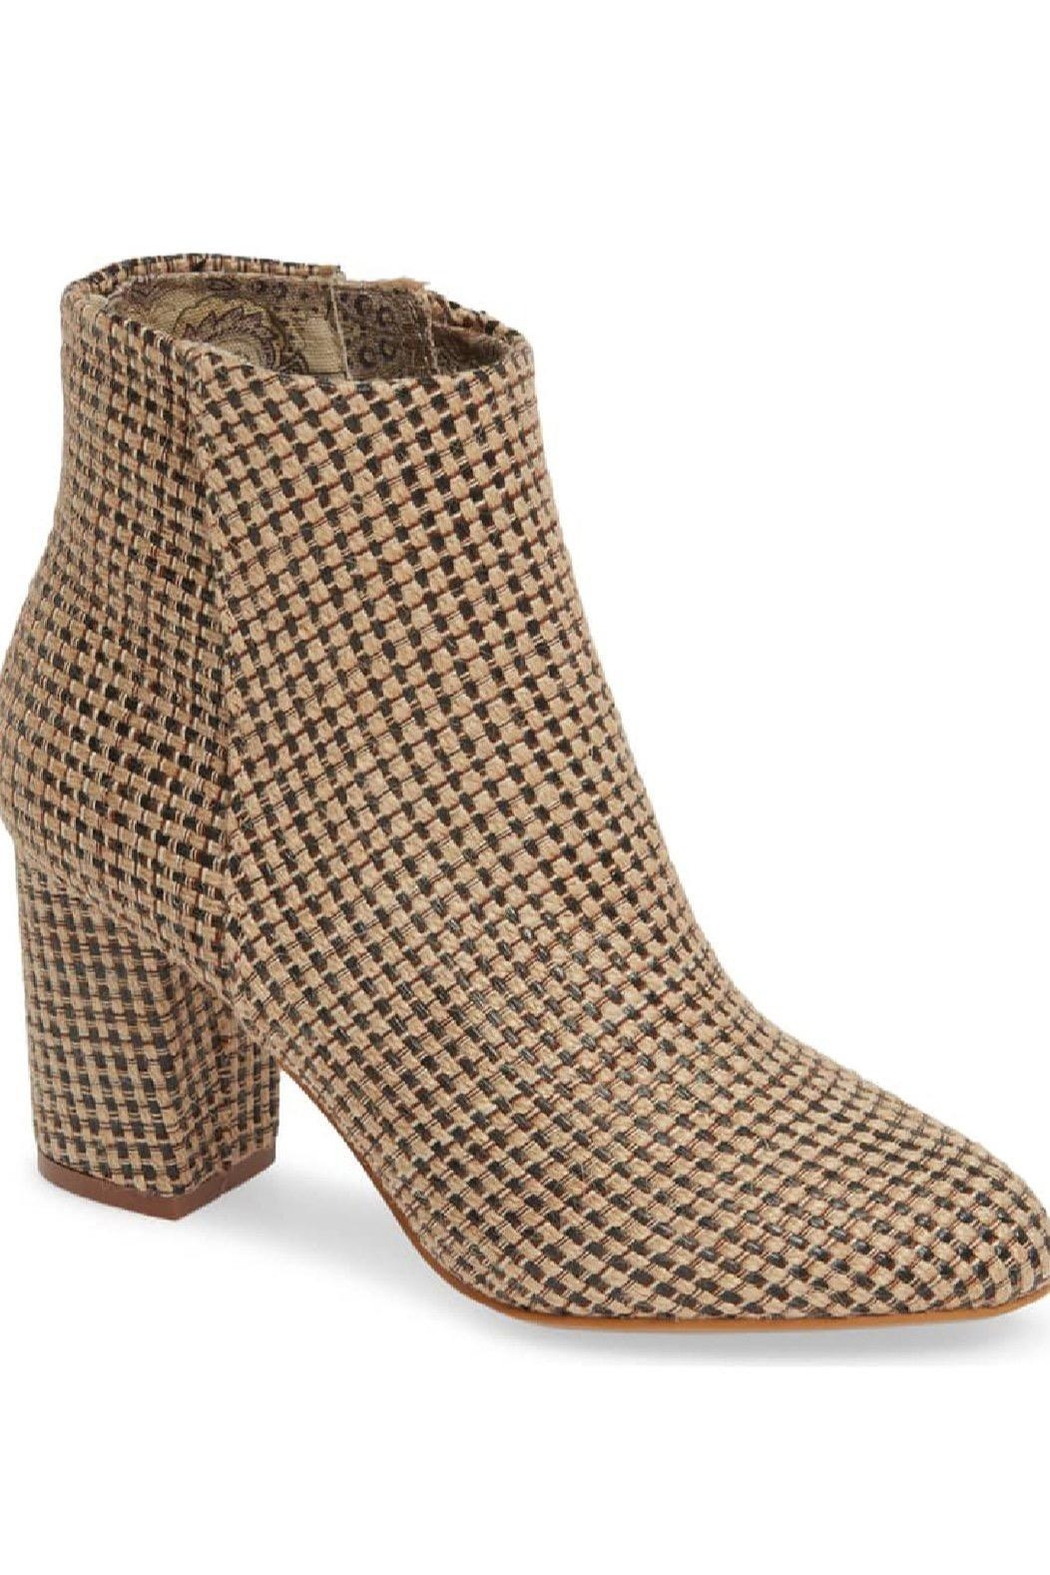 Band Of Gypsies Andrea Ankle Bootie - Main Image